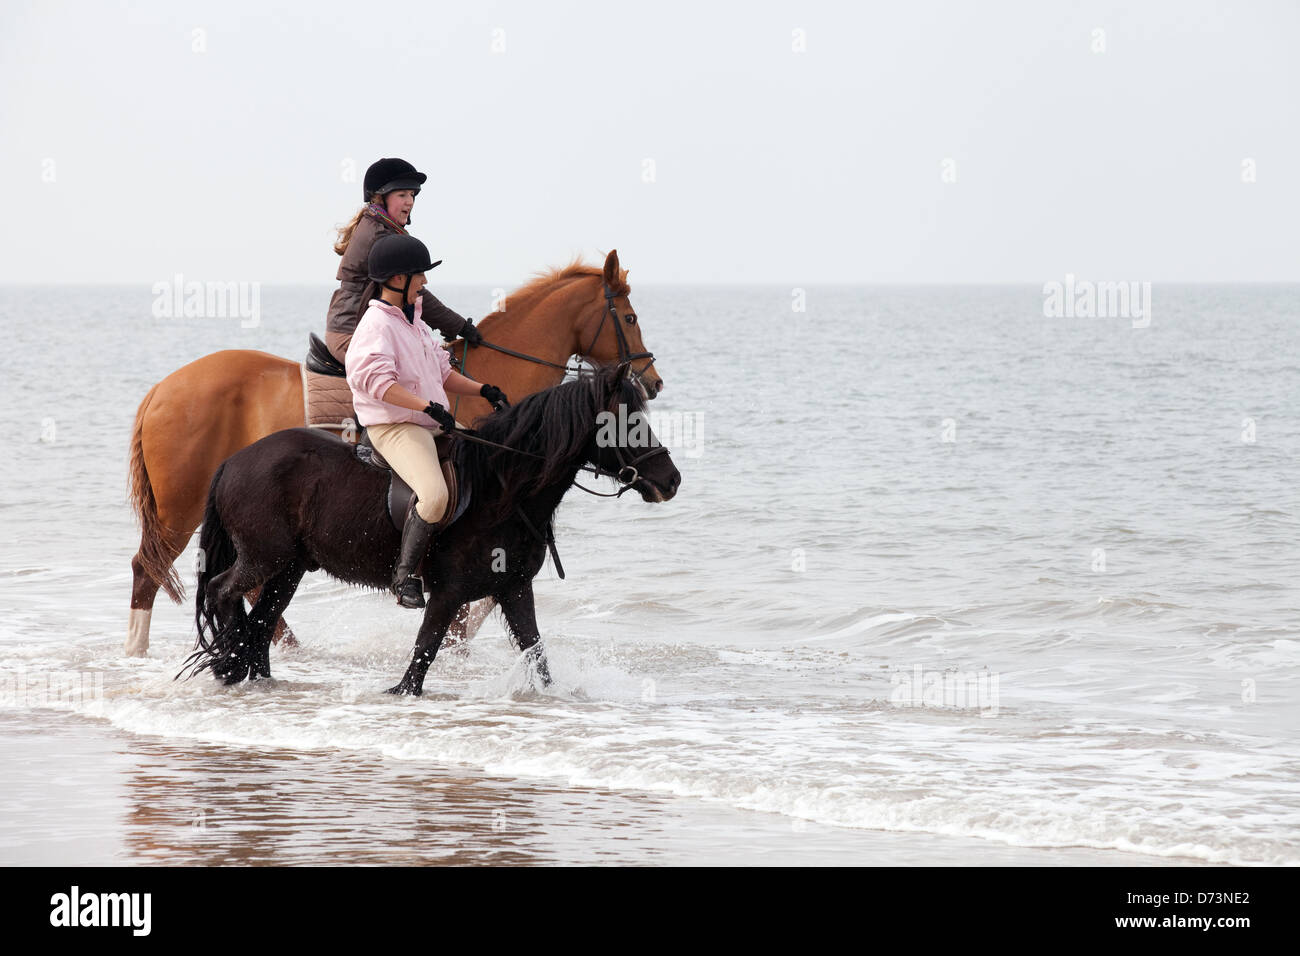 Two young women riding horses in the sea surf at the waters edge, Holkham Beach, Norfolk UK - Stock Image